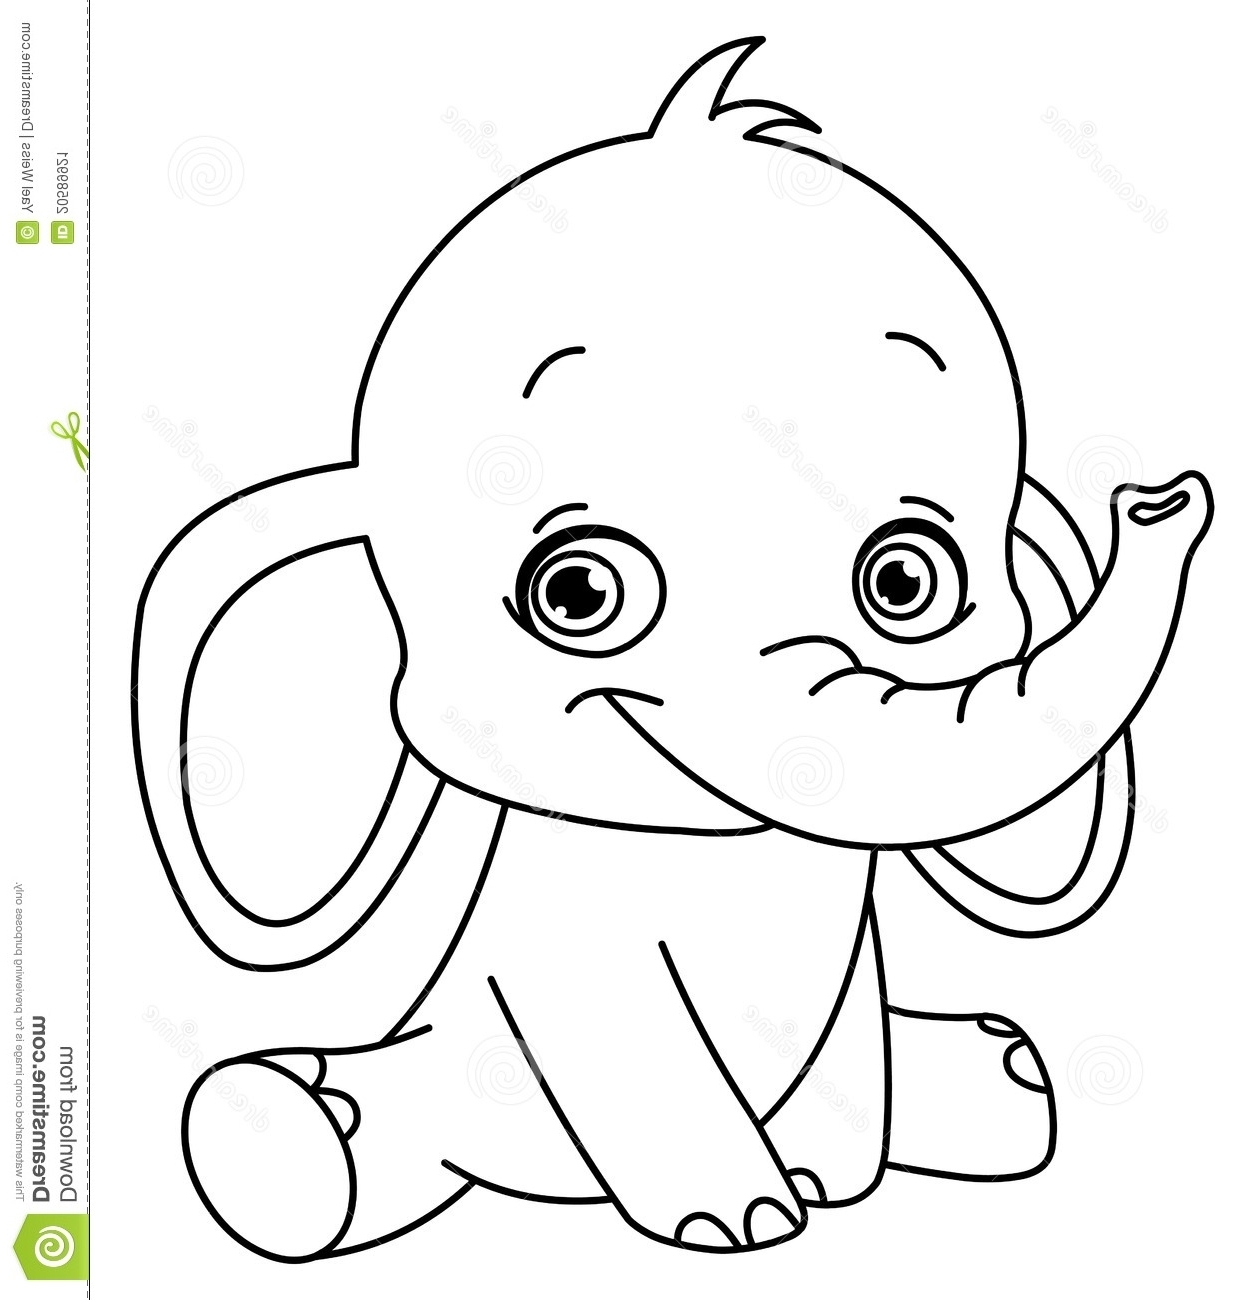 baby elephant coloring pages - baby elephant coloring pages print